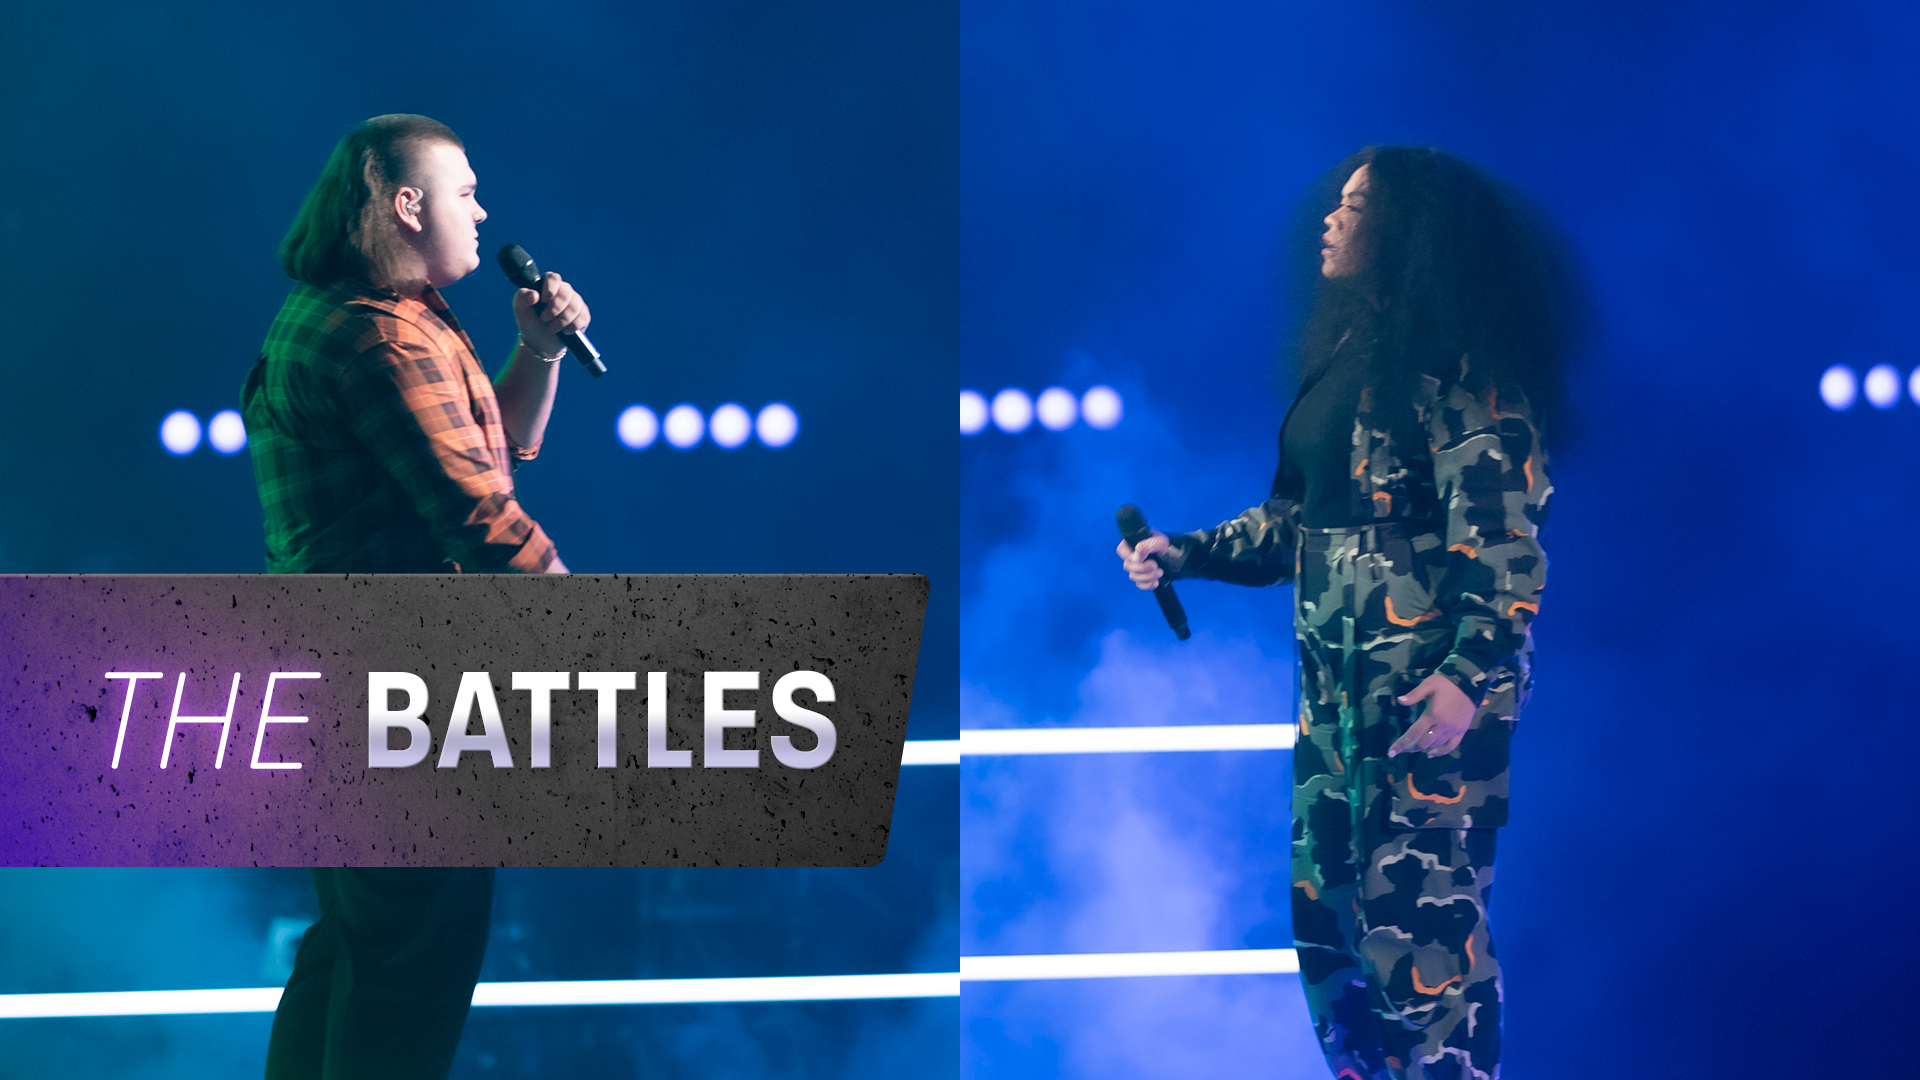 The Battles: Adam vs Elyse 'Wrecking Ball'